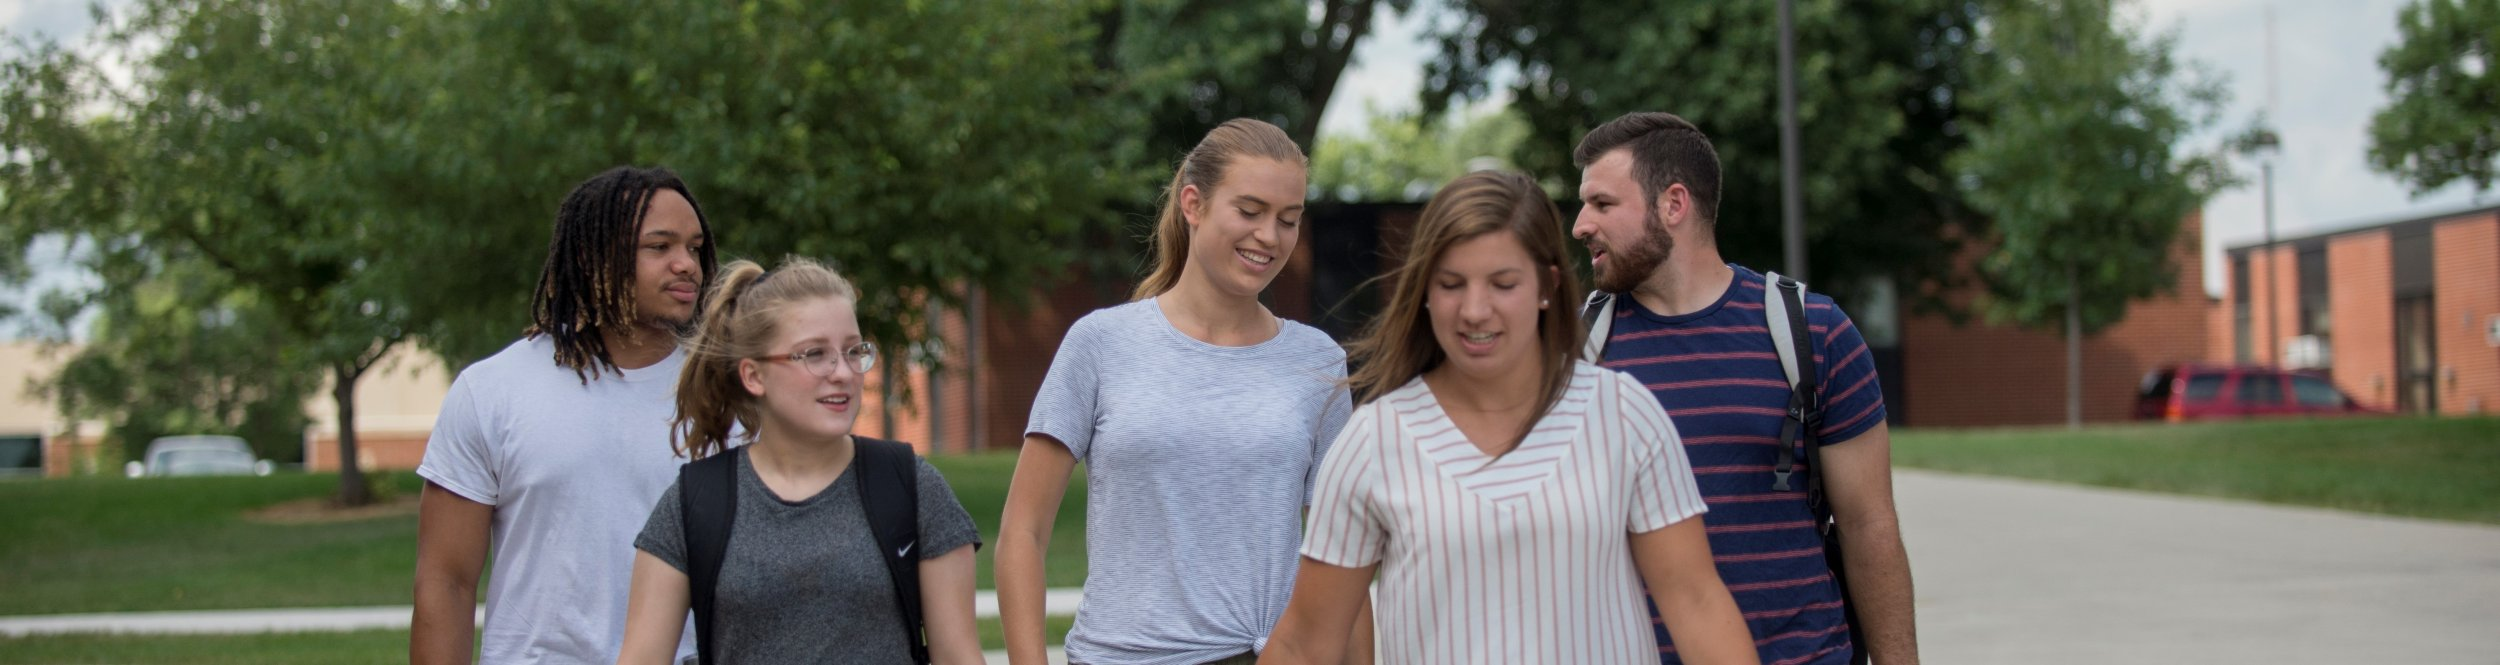 A group of students walk on the sidewalk together.